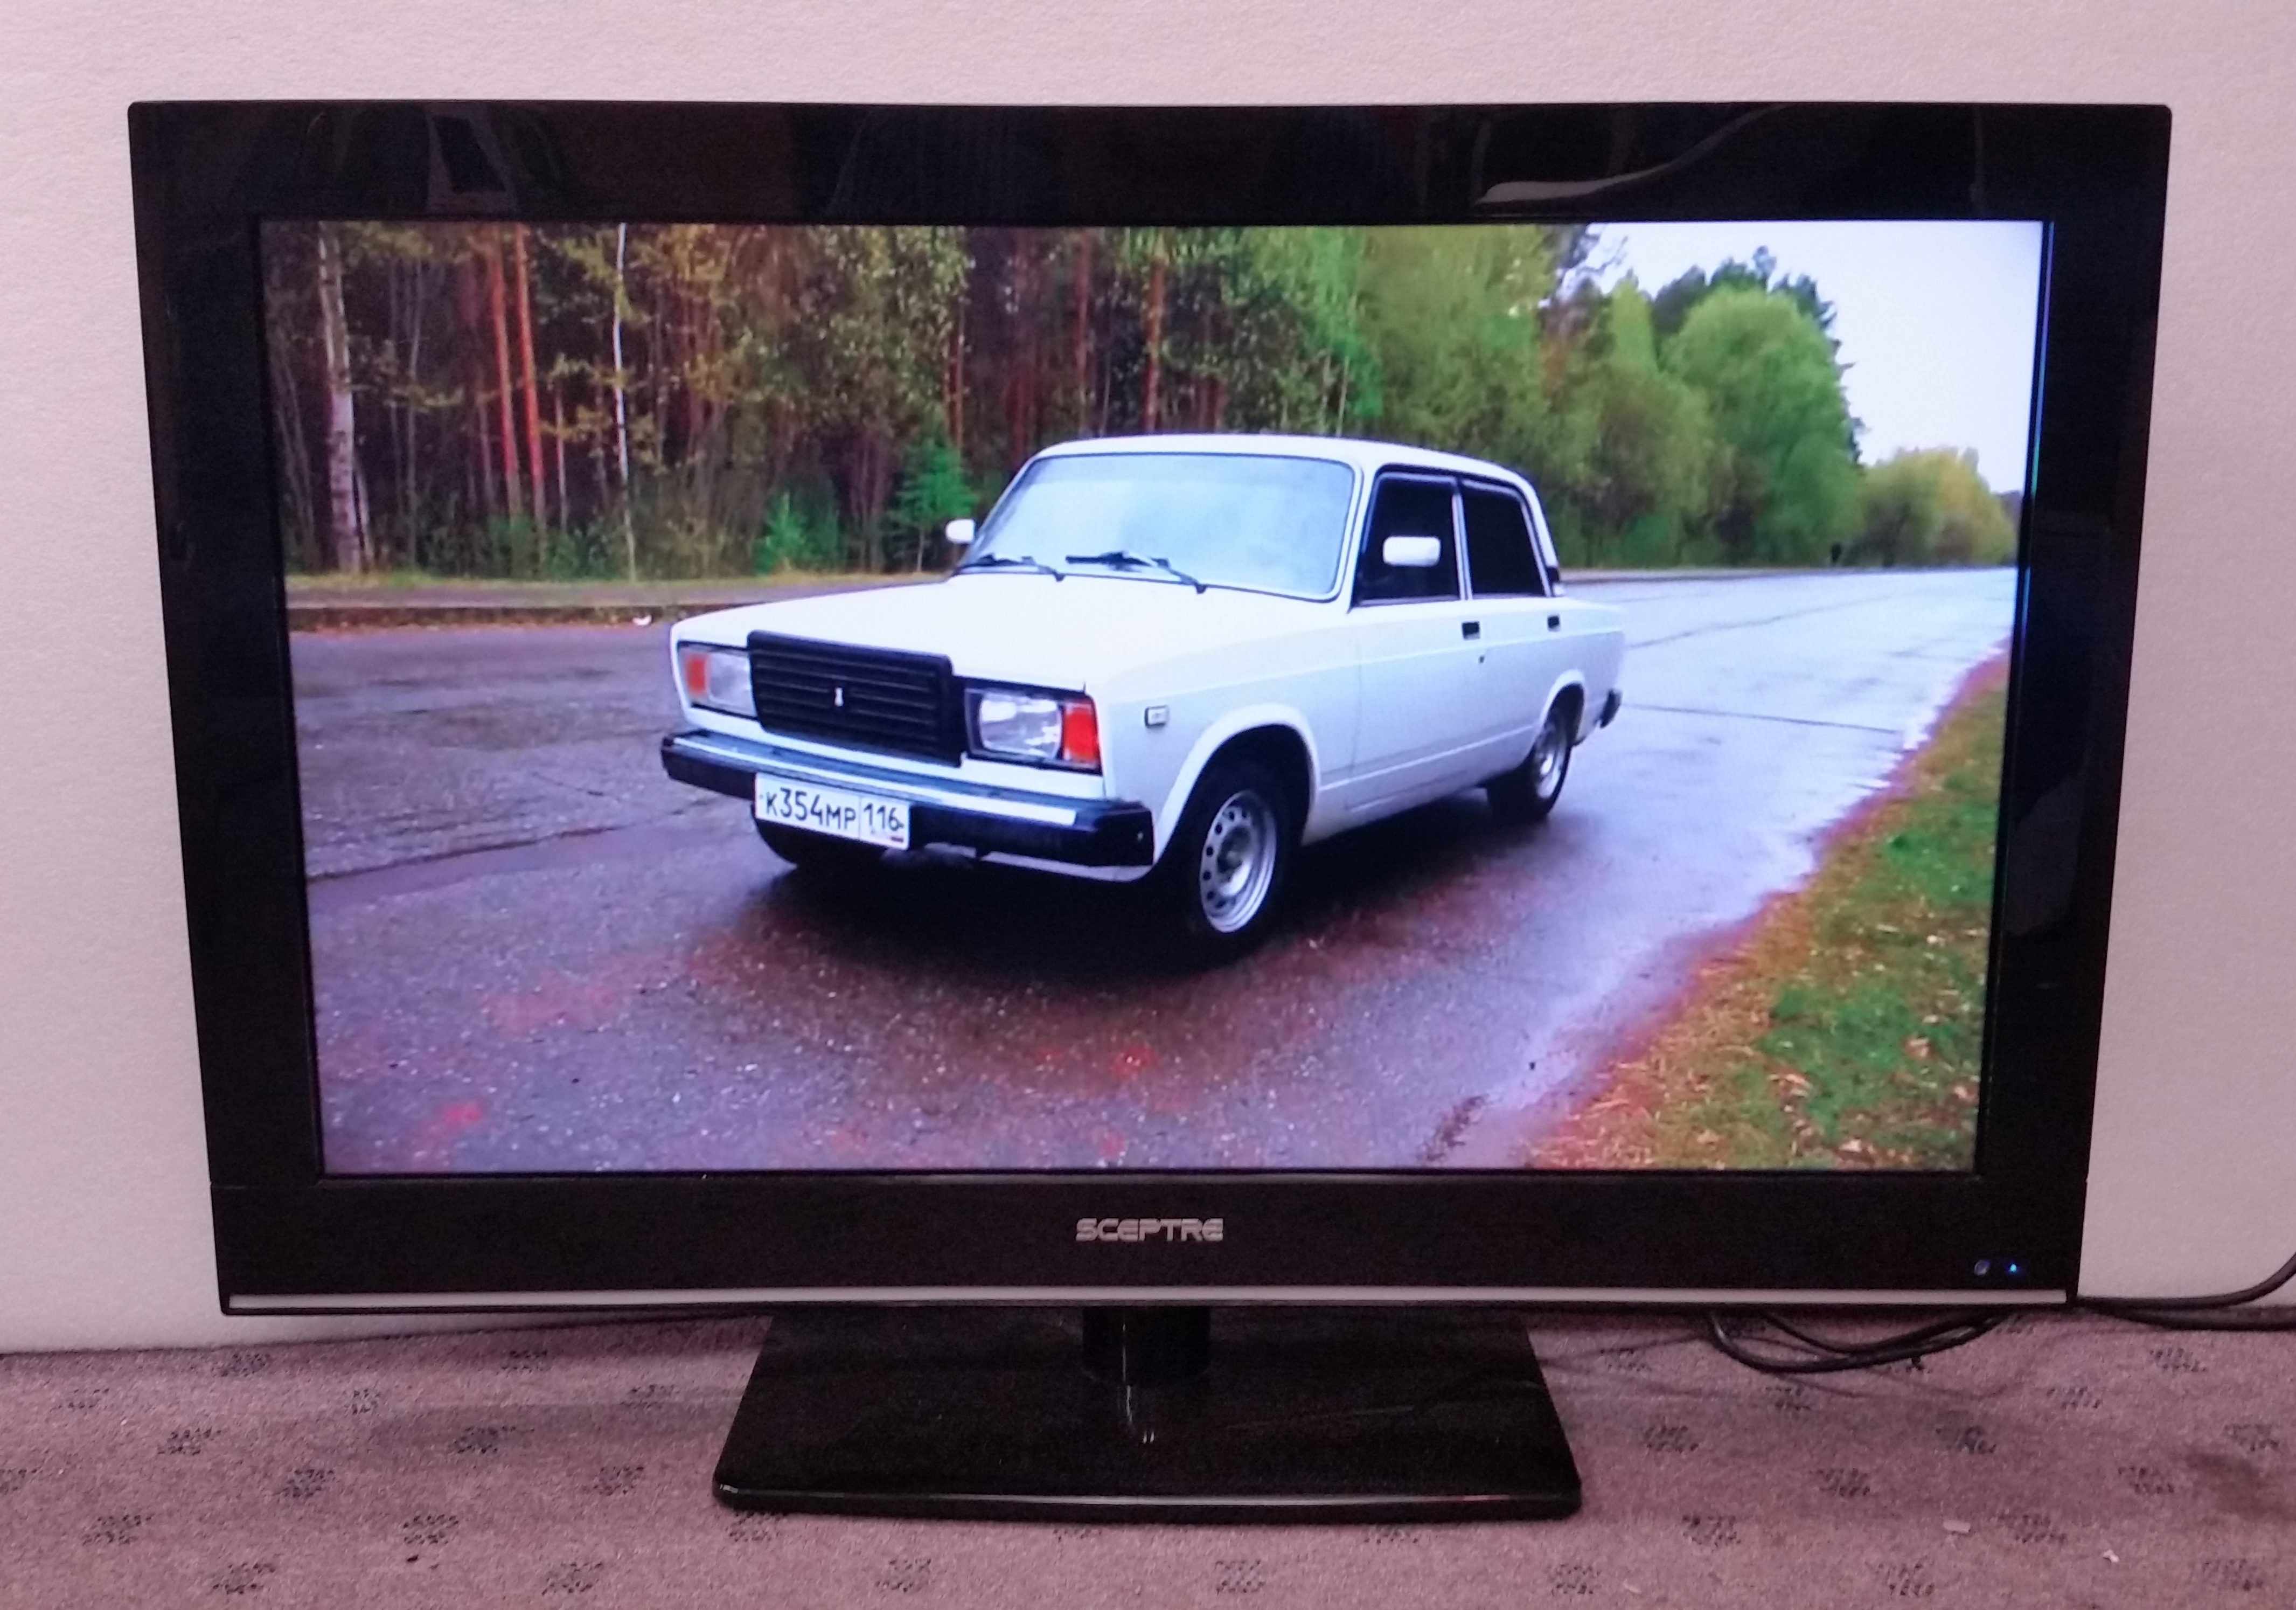 Tv Sceptre X322bv Hd 32 Lcd Tv Used Buy Sell Electronics